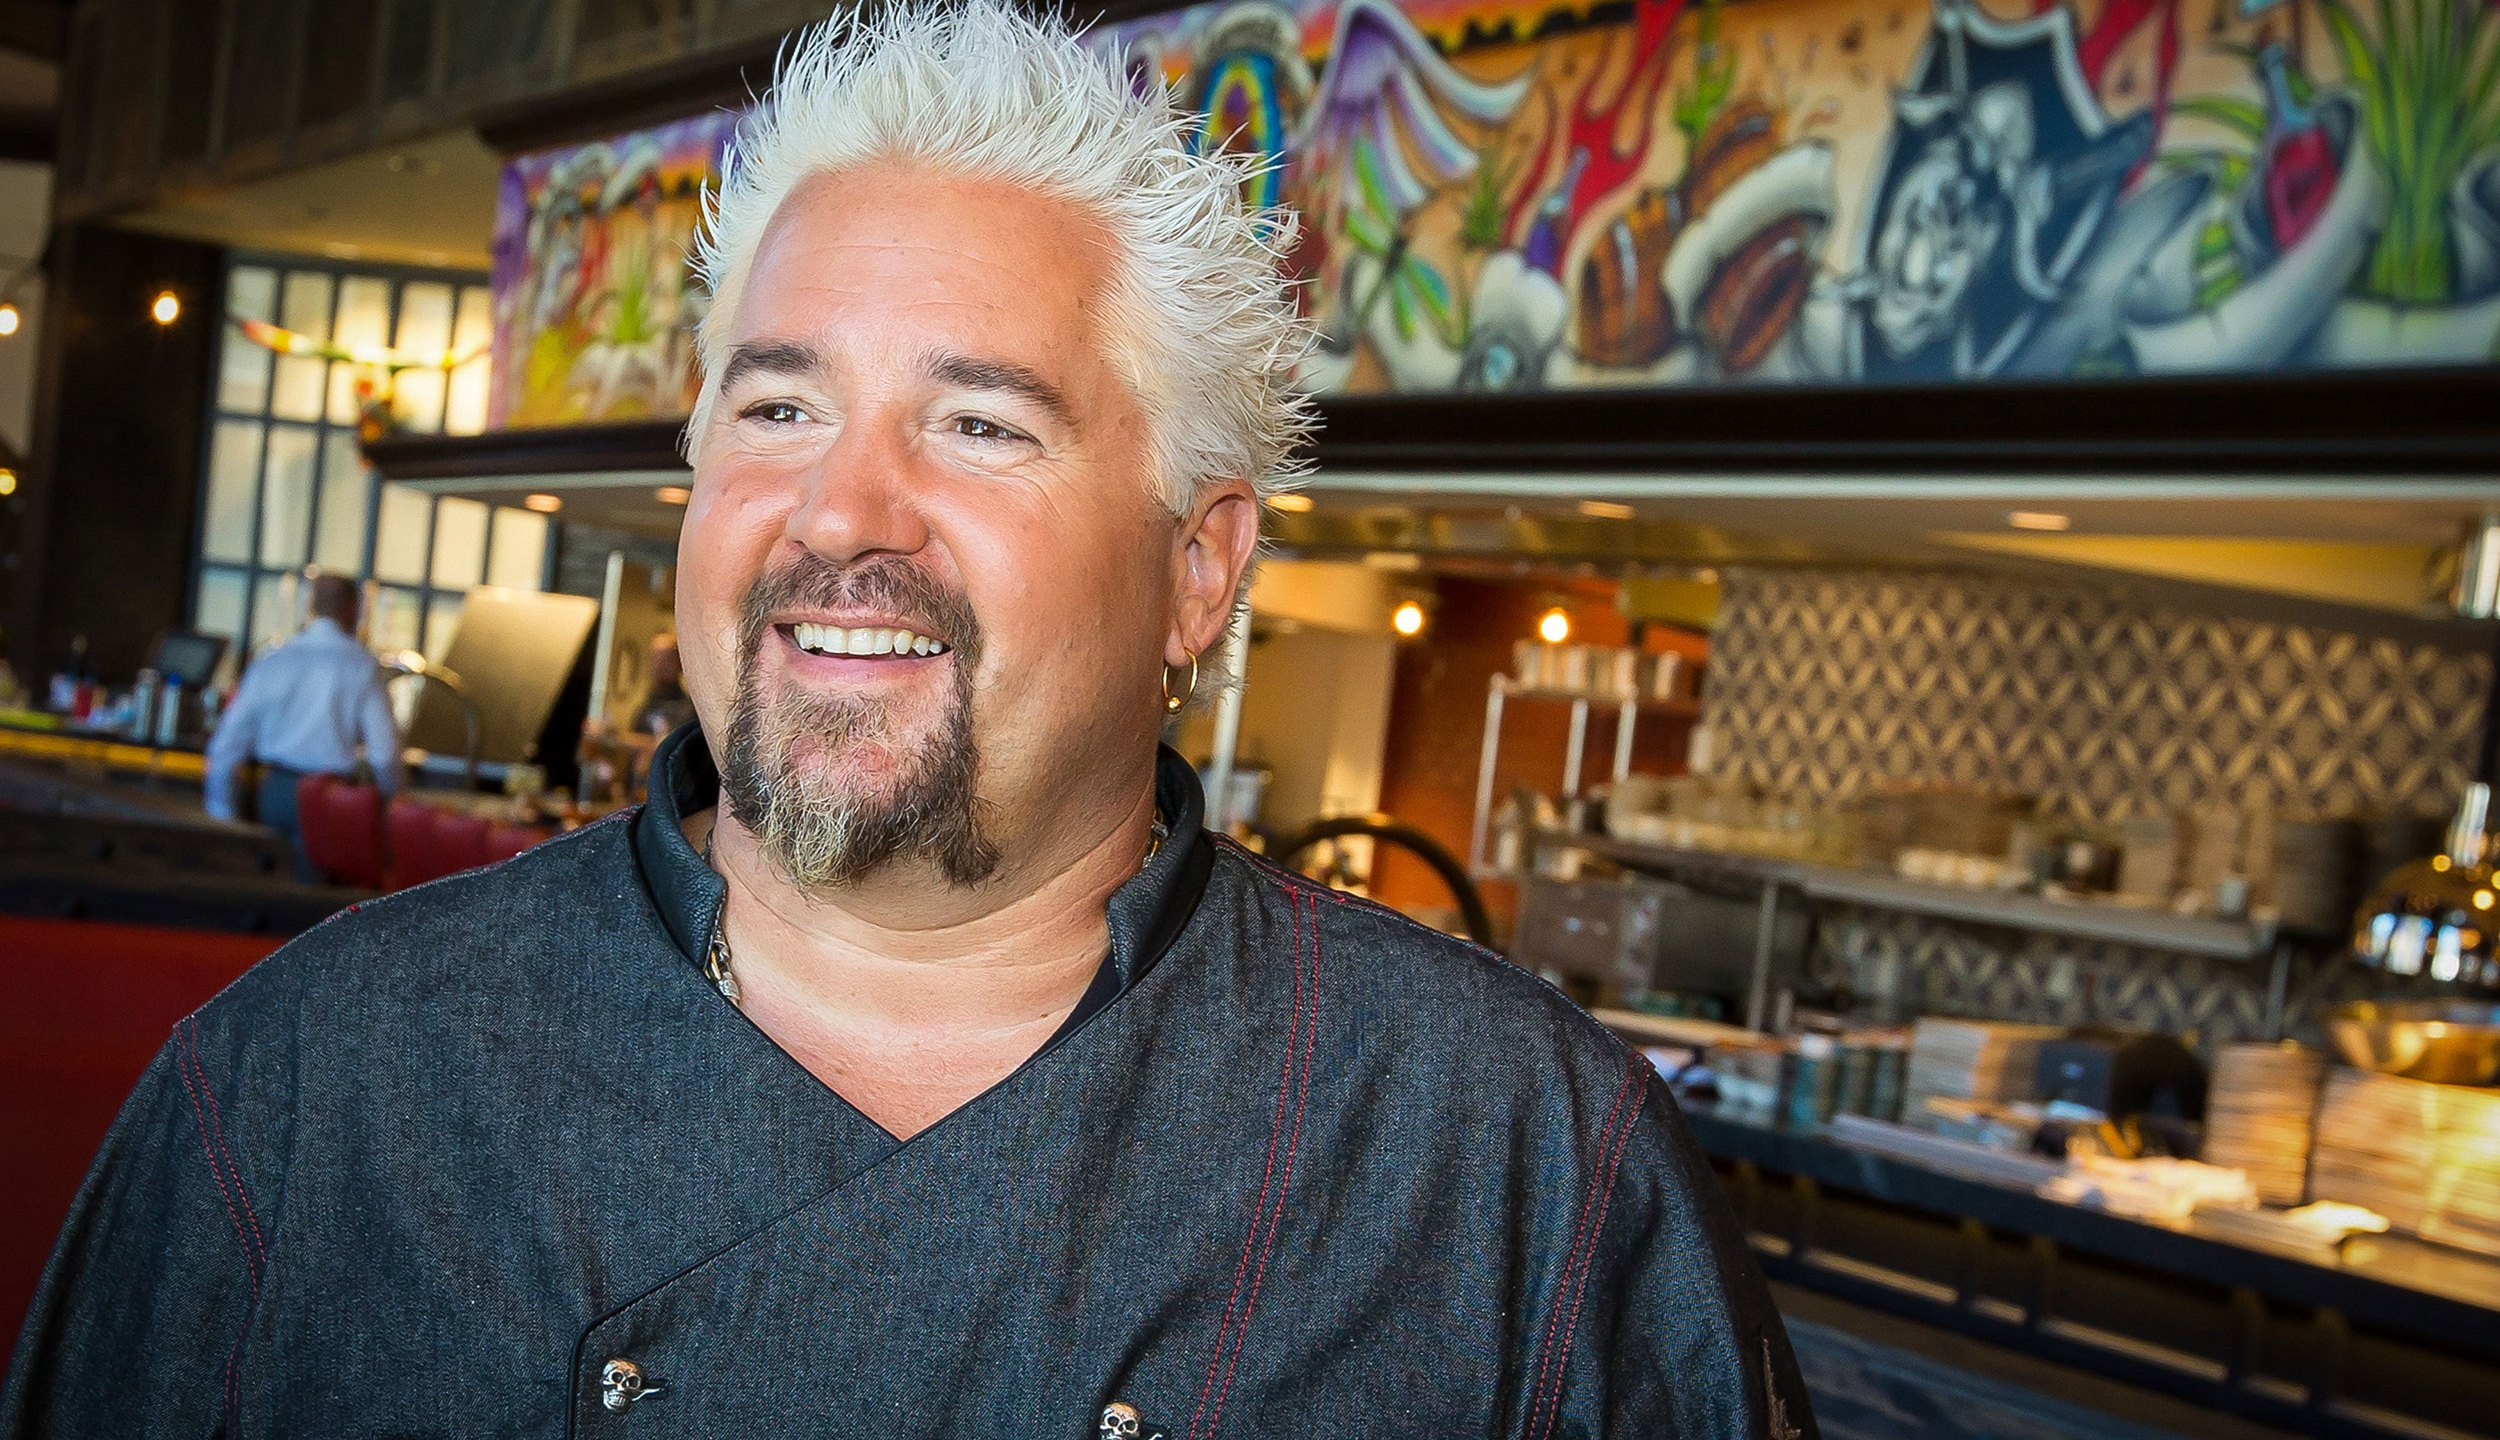 Guy Fieri pictured at the grand opening of Guy Fieri's El Burro Borracho at Rio All-Suite Hotel and Casino in Las Vegas, Nevada on April 1, 2016. (Erik Kabik Photography/ MediaPunch/IPX via CNN)